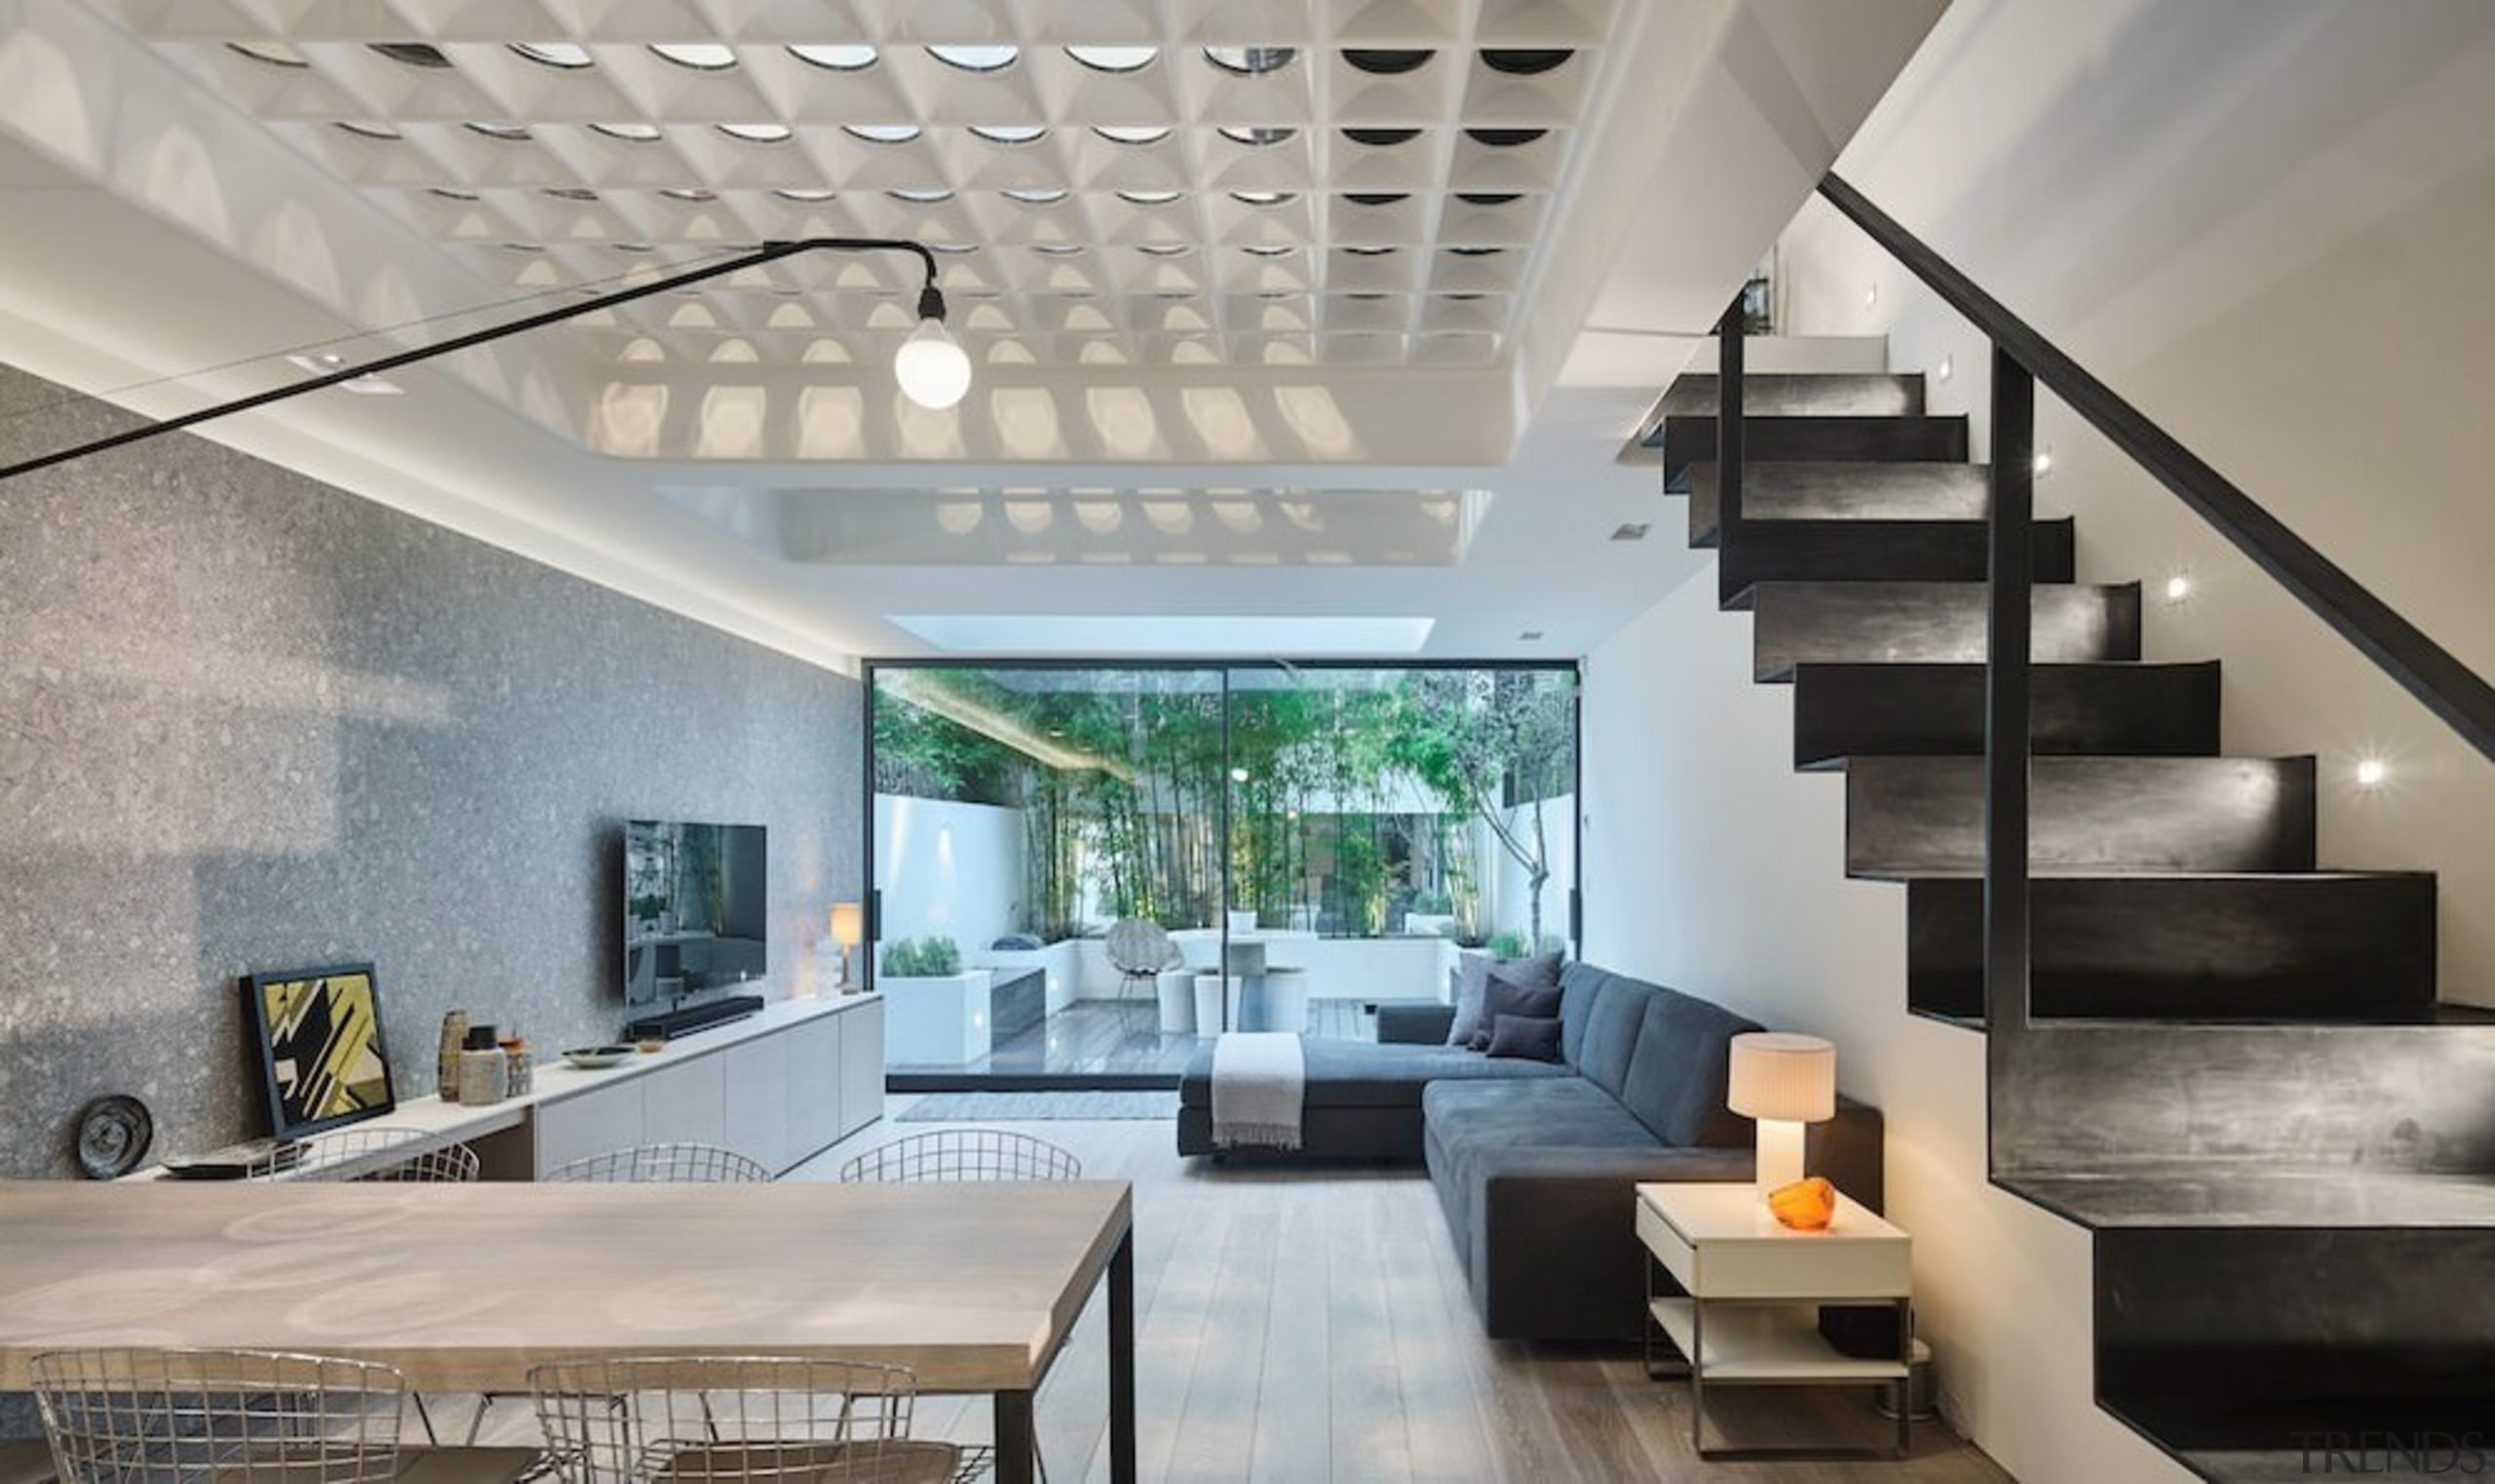 Andy Martin Architecture – Renovation in London - architecture, ceiling, condominium, daylighting, estate, house, interior design, living room, lobby, real estate, stairs, gray